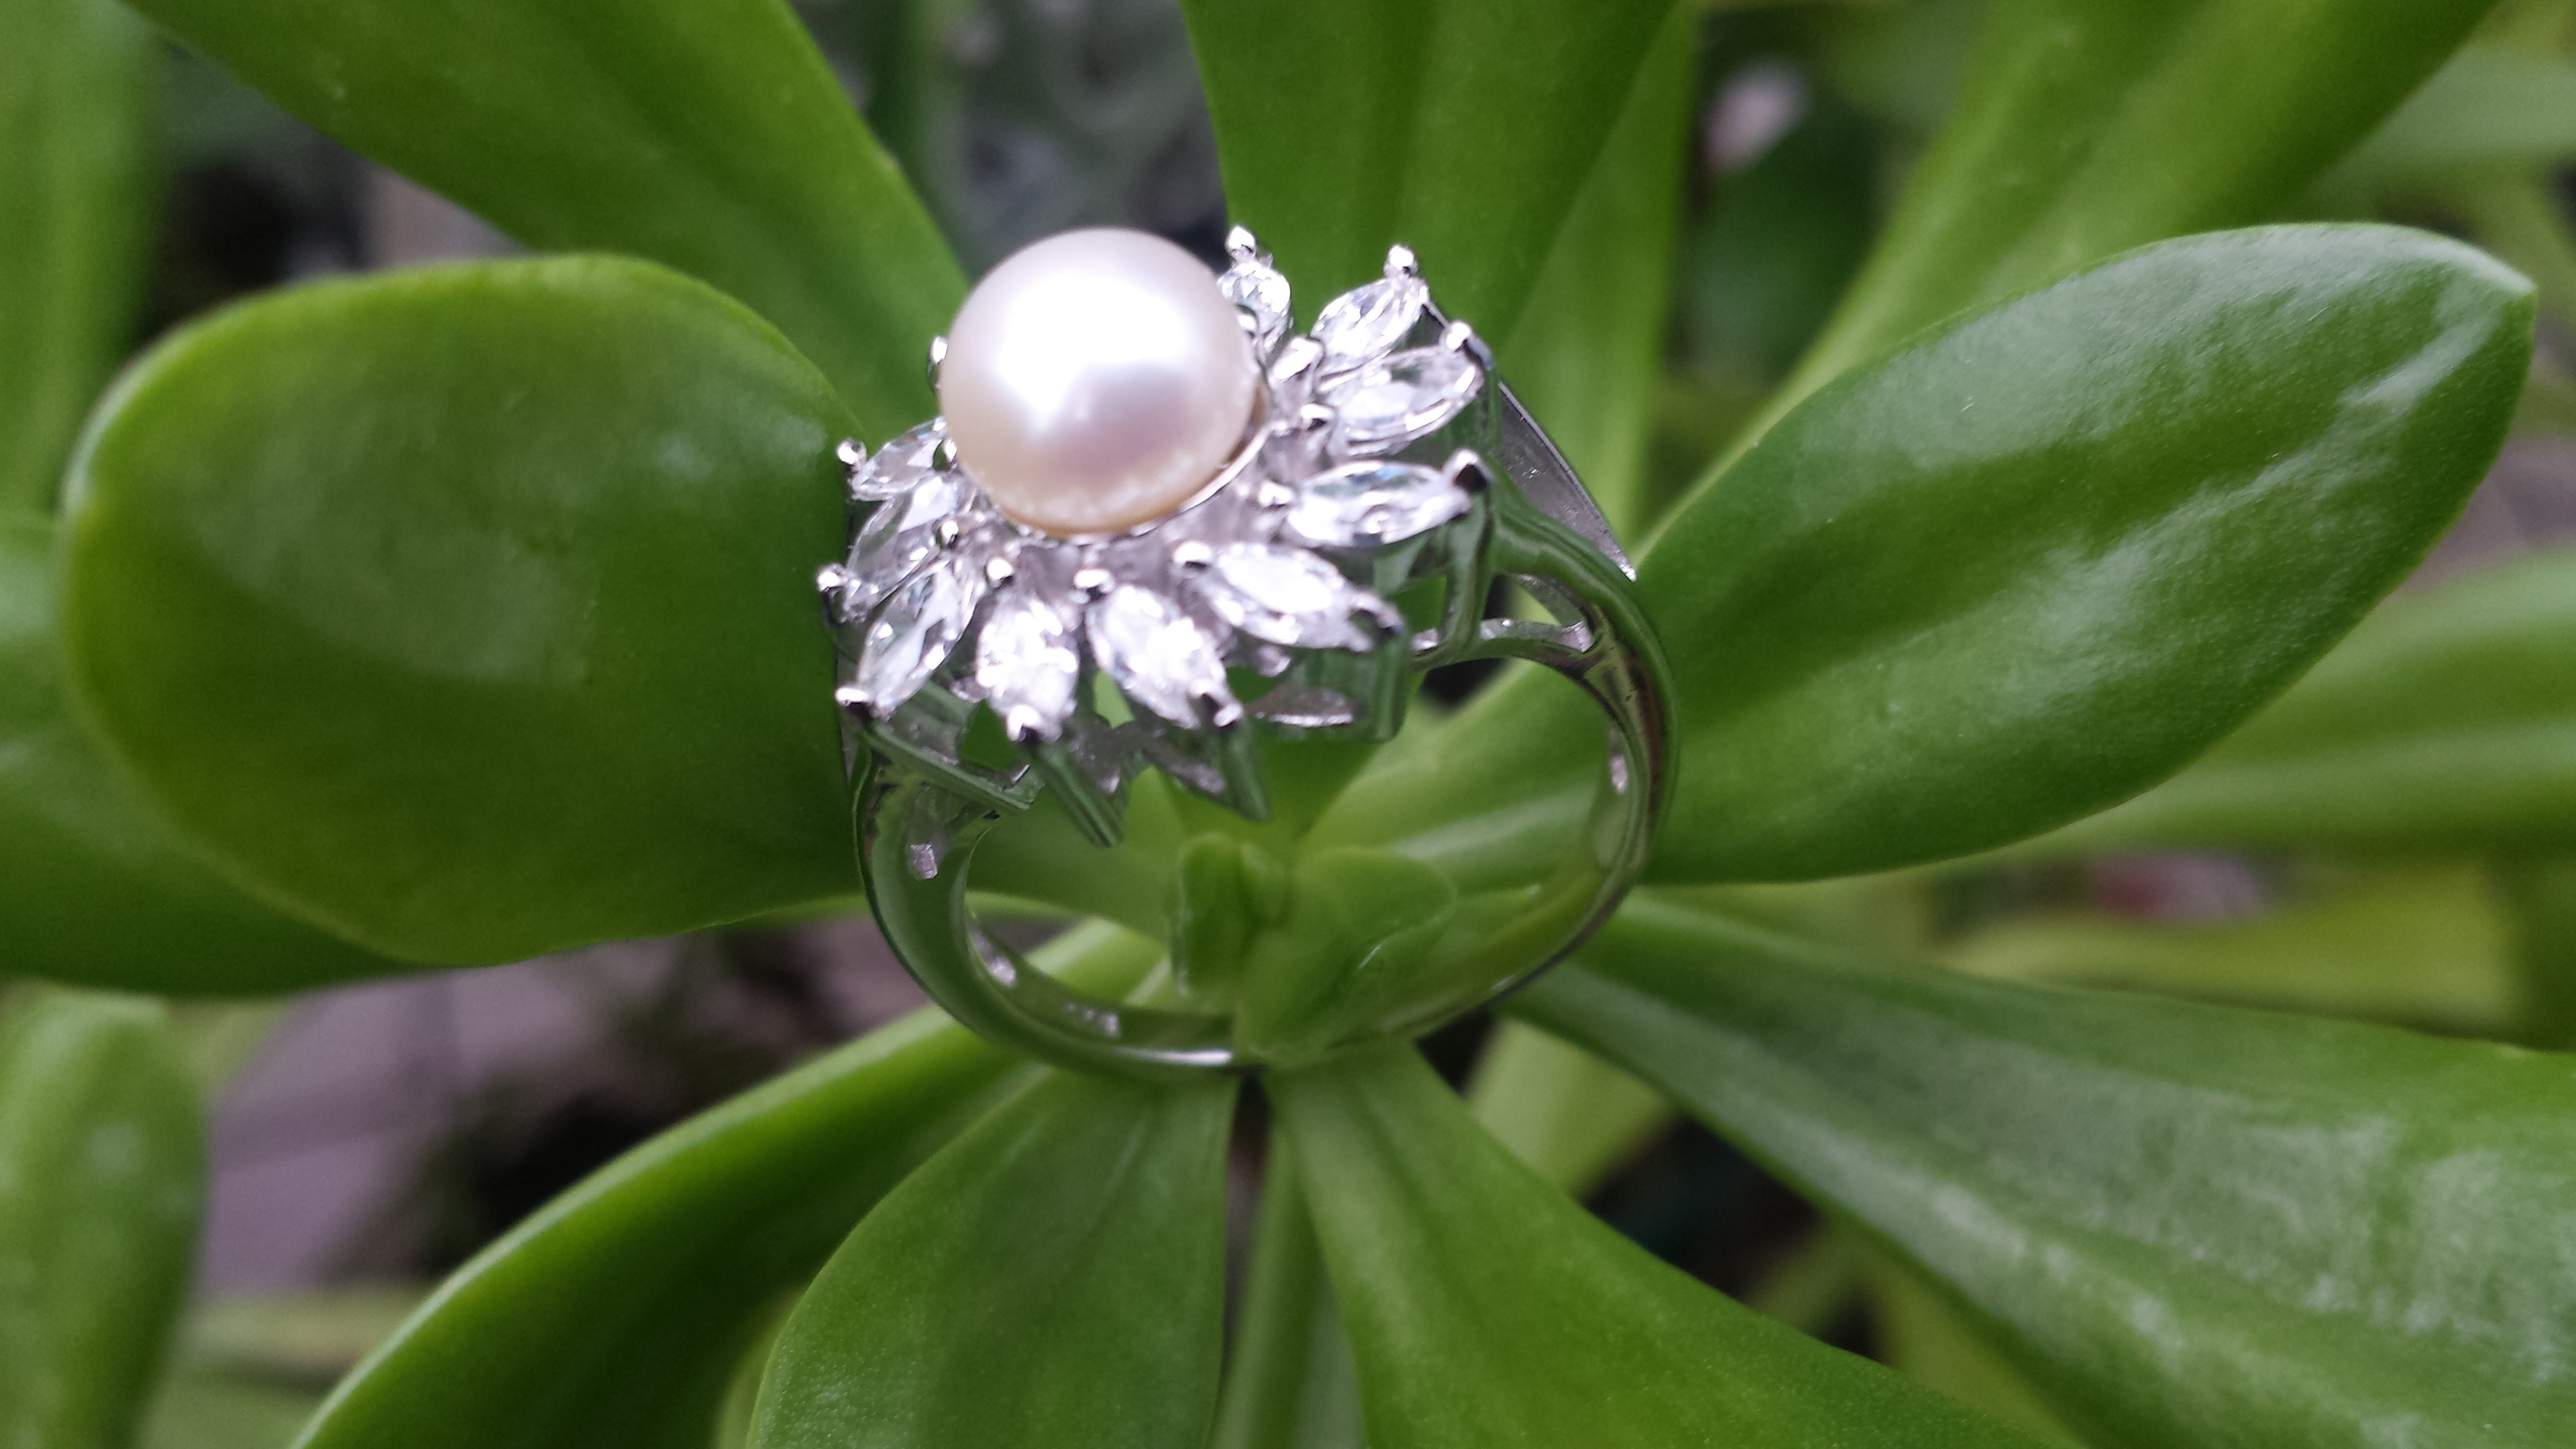 GORGEOUS FRESHWATER PEARL RING WITH 925 STERLING SILVER. 4G